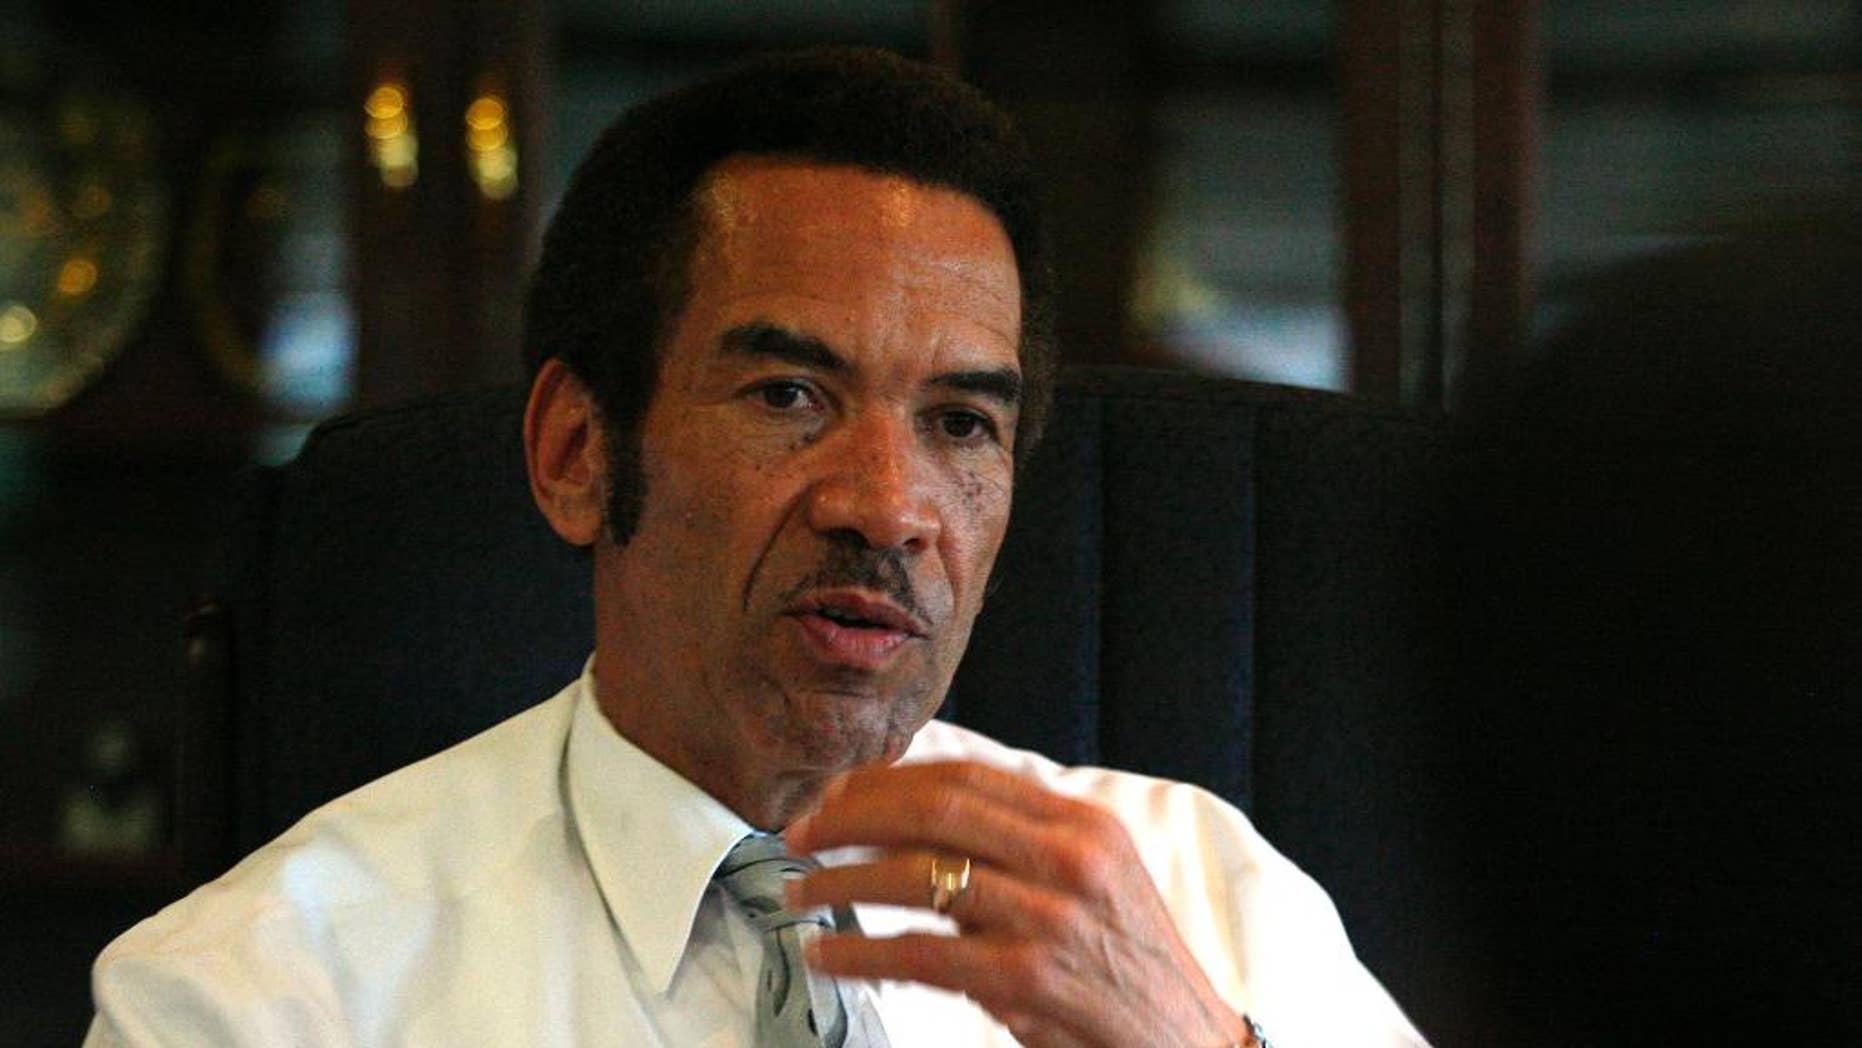 FILE -  In this Friday April. 30, 2010 file photo Botswana President Seretse Ian Khama speaks during an interview with The Associated Press at his office in Gaborone, Botswana. The July 30, 2014, death, in a road accident, of opposition leader Gomolemo Motswaleda, has highlighted brewing tension in Botswana, with the opposition alleging that Motswaledi may have been assassinated by pro-government agents although evidence is lacking. Motswaledi was once an ally of President Ian Khama but fell out with him and formed the Botswana Movement for Democracy in 2010 to challenge what he described as a concentration of power among presidential loyalists.  (AP Photo/Themba Hadebe, File)